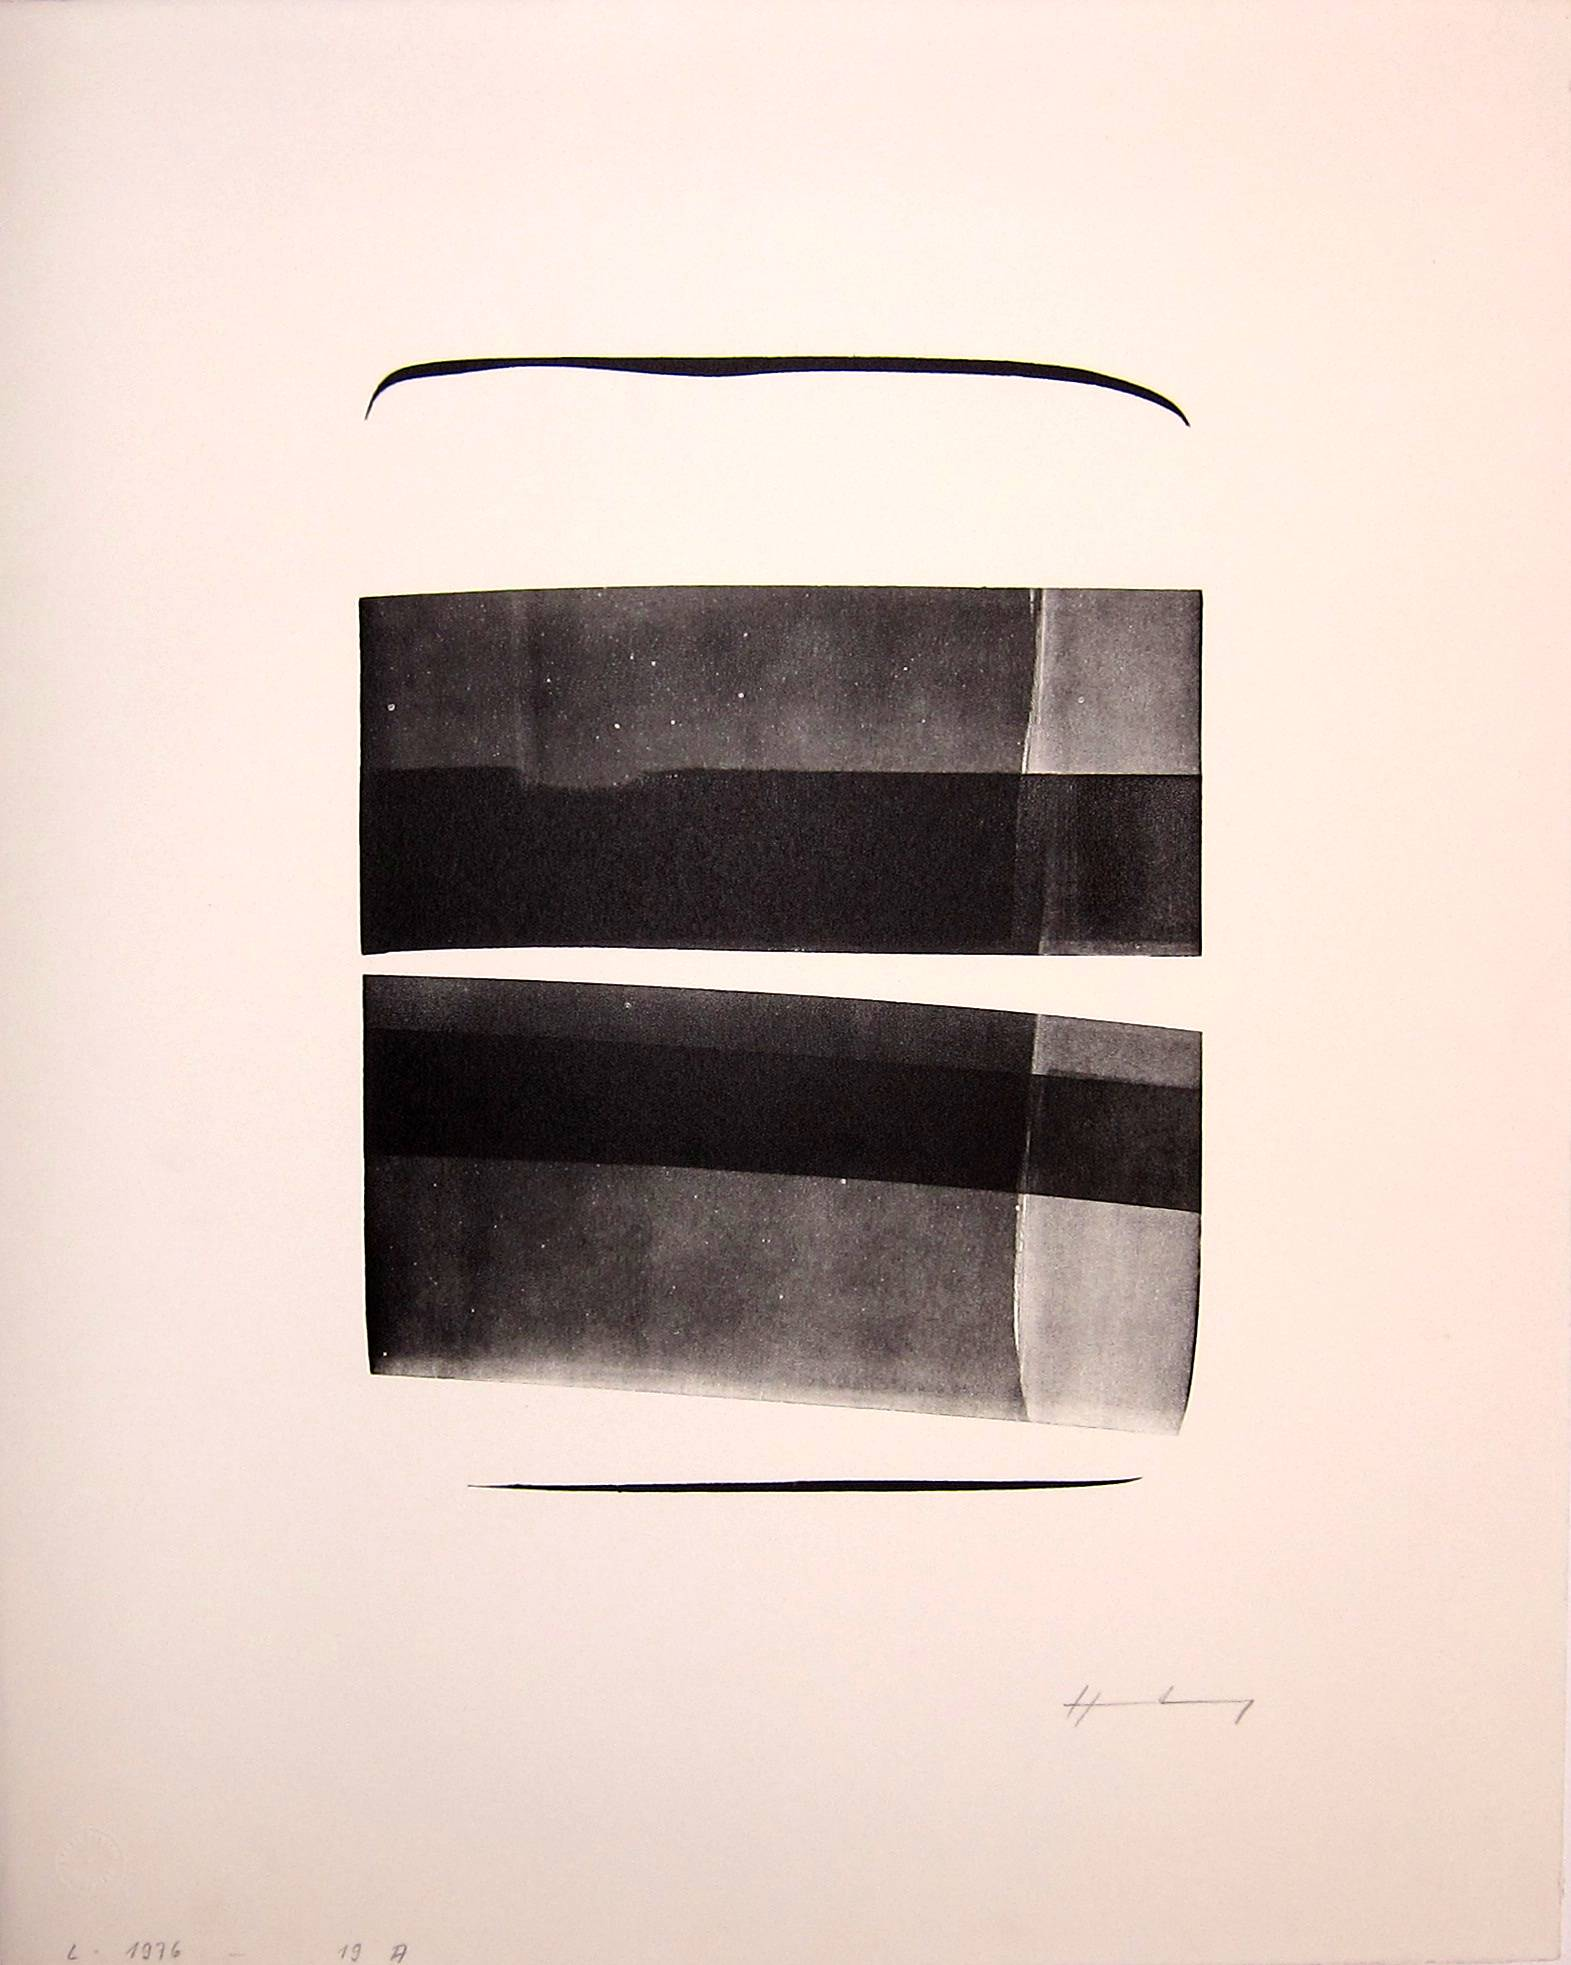 HANS HARTUNG [1904-89]. L-1976-19A, 1976. Lithograph, [edition of 50?], proof. Erker Press.